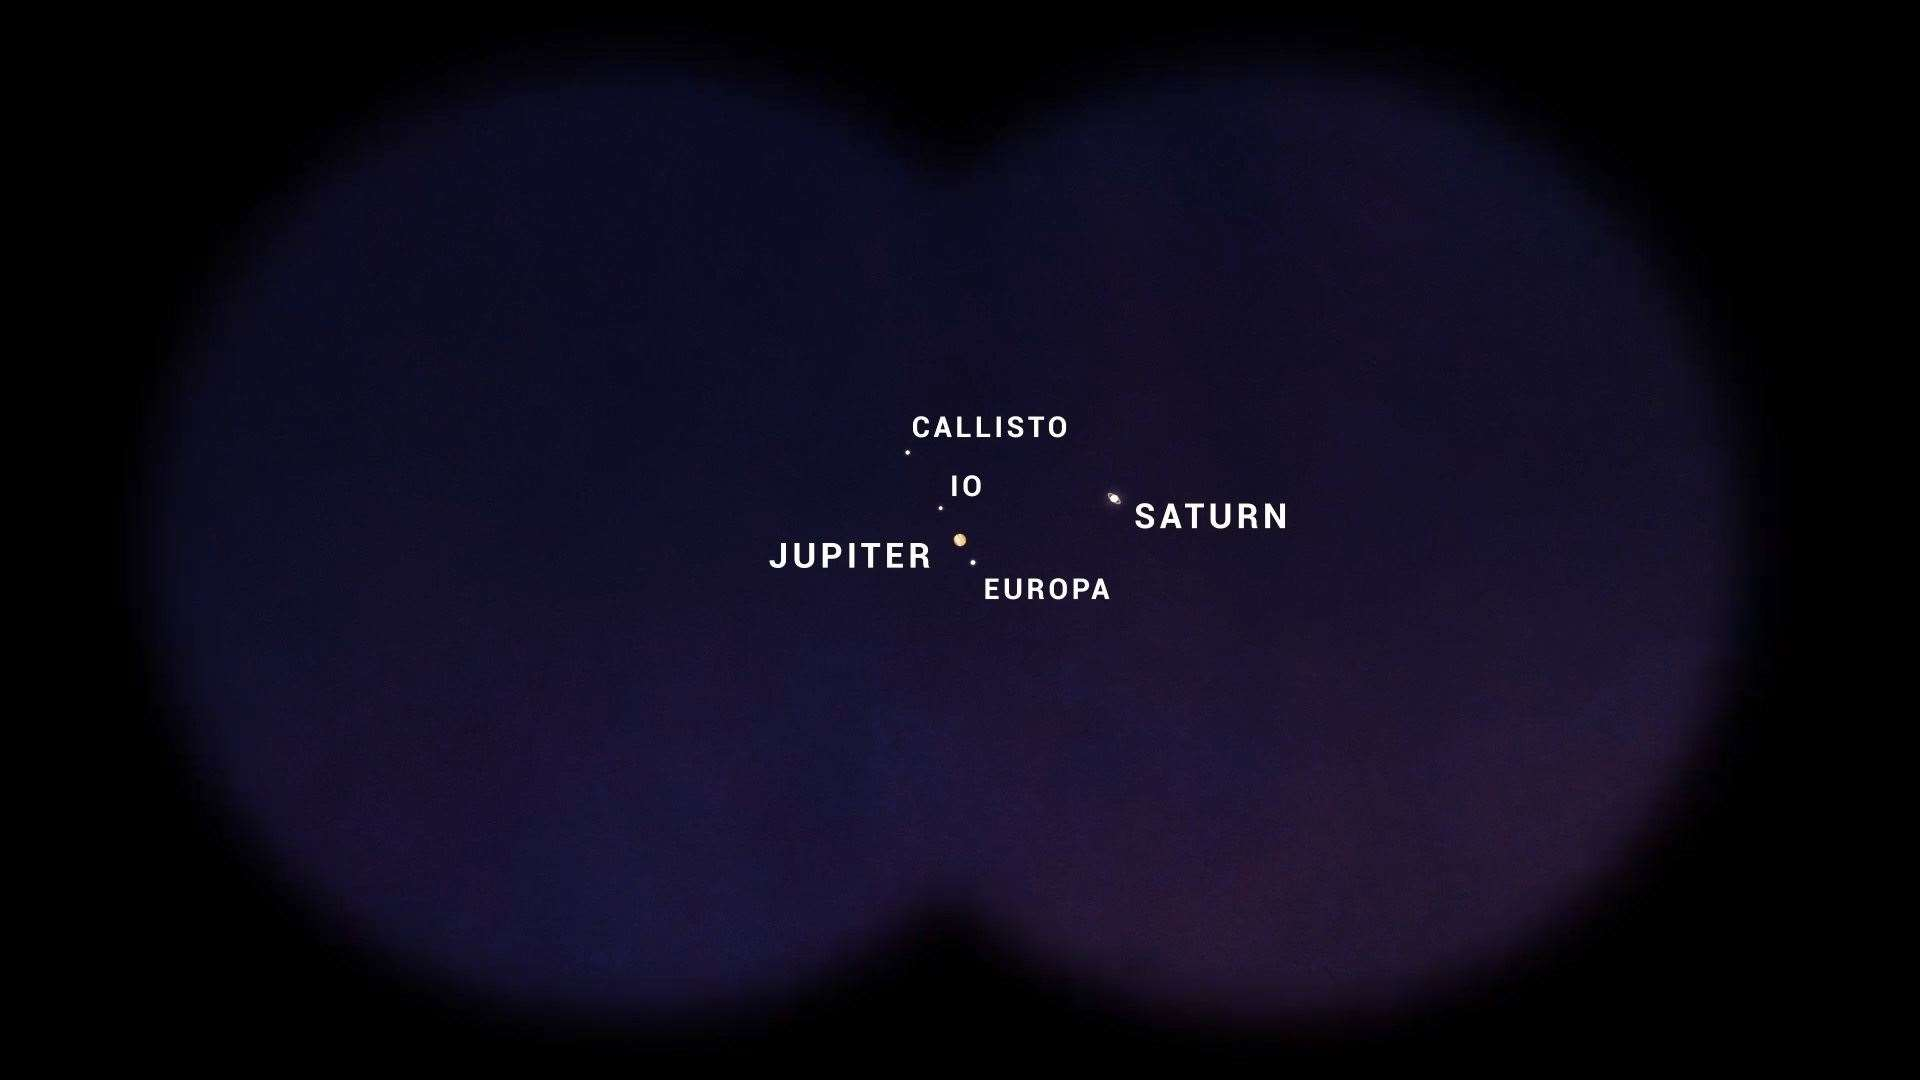 How Jupiter, with its four Galilean moons, and Saturn could appear on December 21 through high quality binoculars. Image: NASA/JPL-Caltech